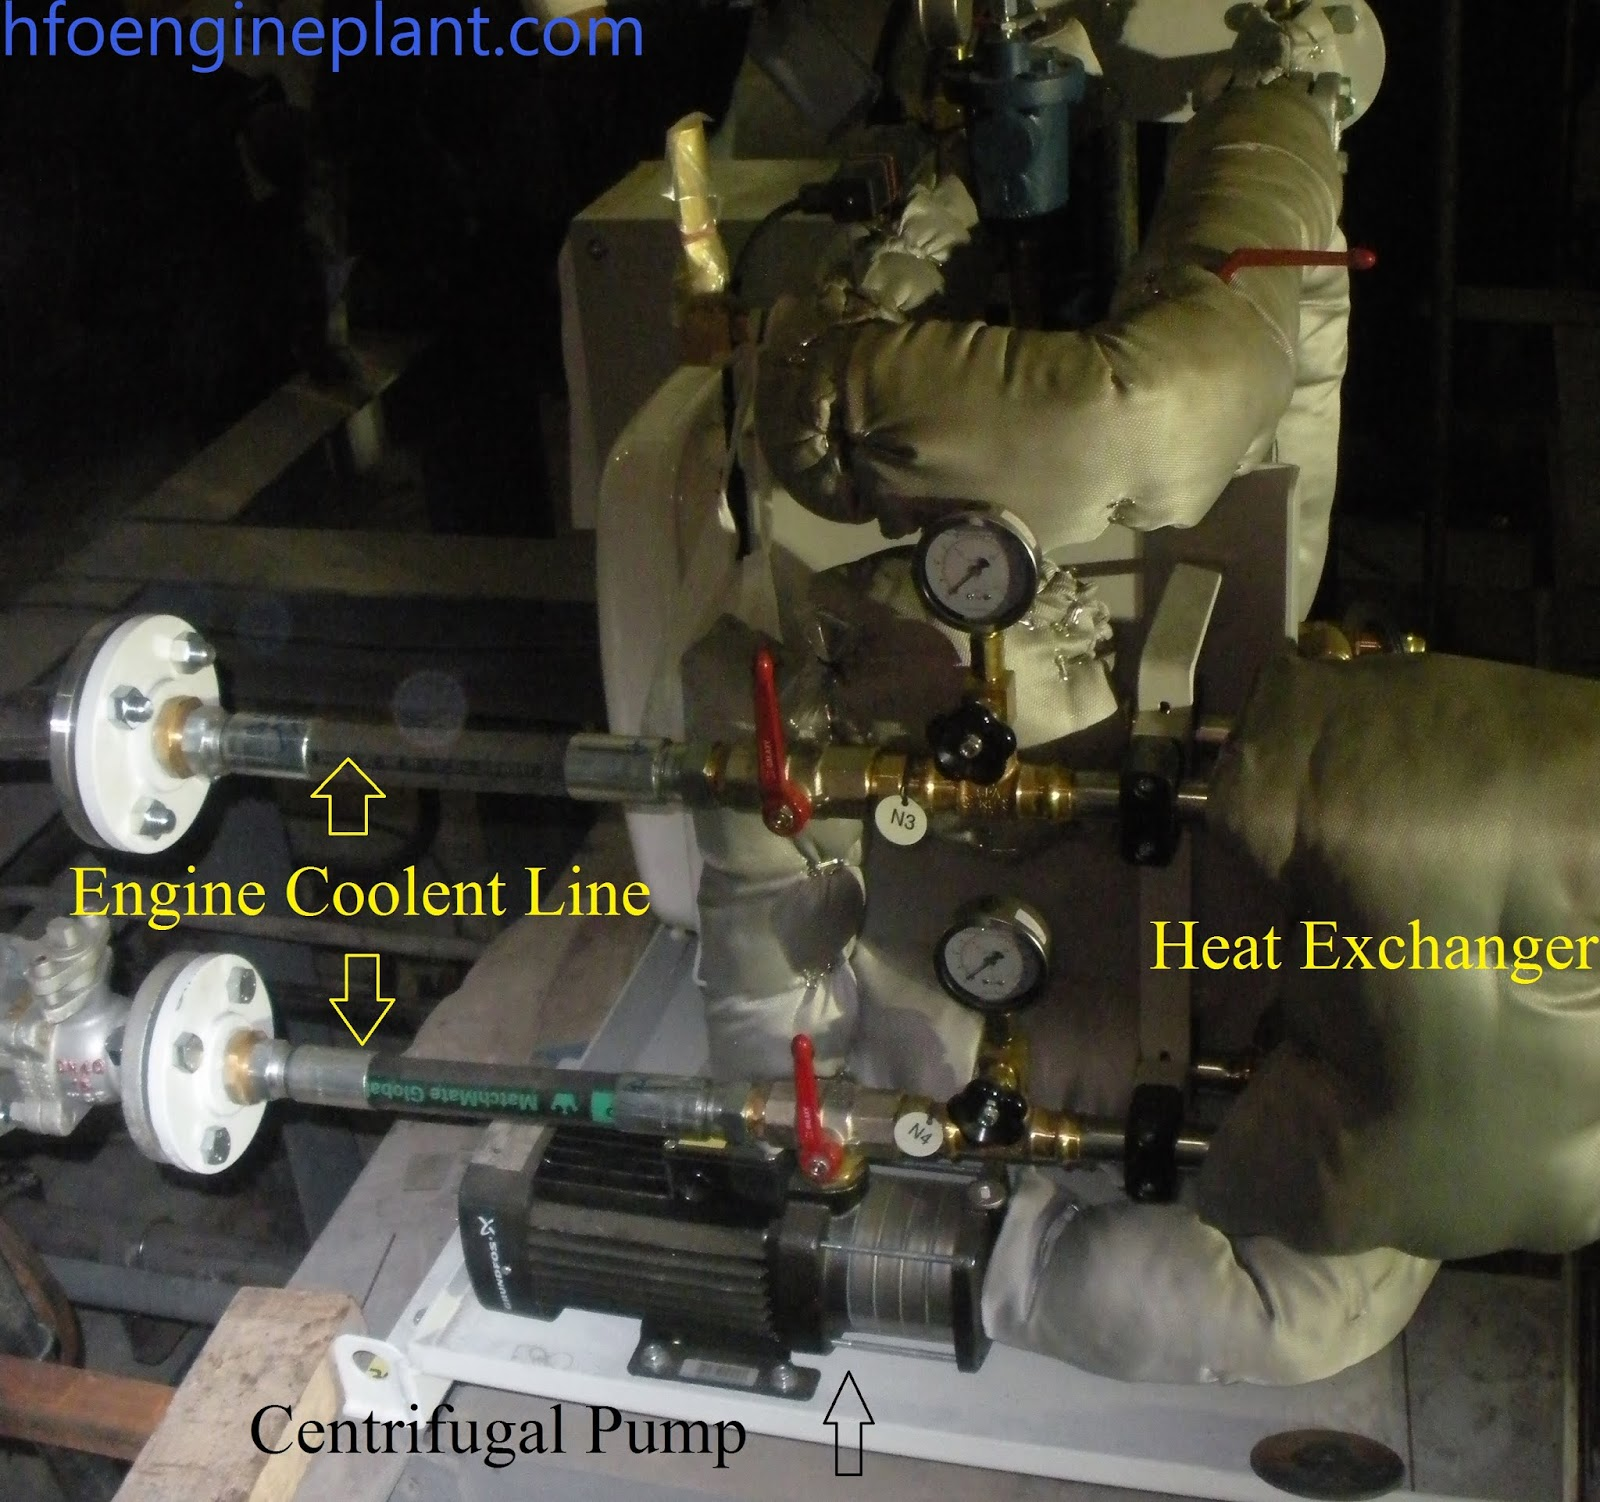 Nozzle cooling unit-Heat exchanger & Engine coolent